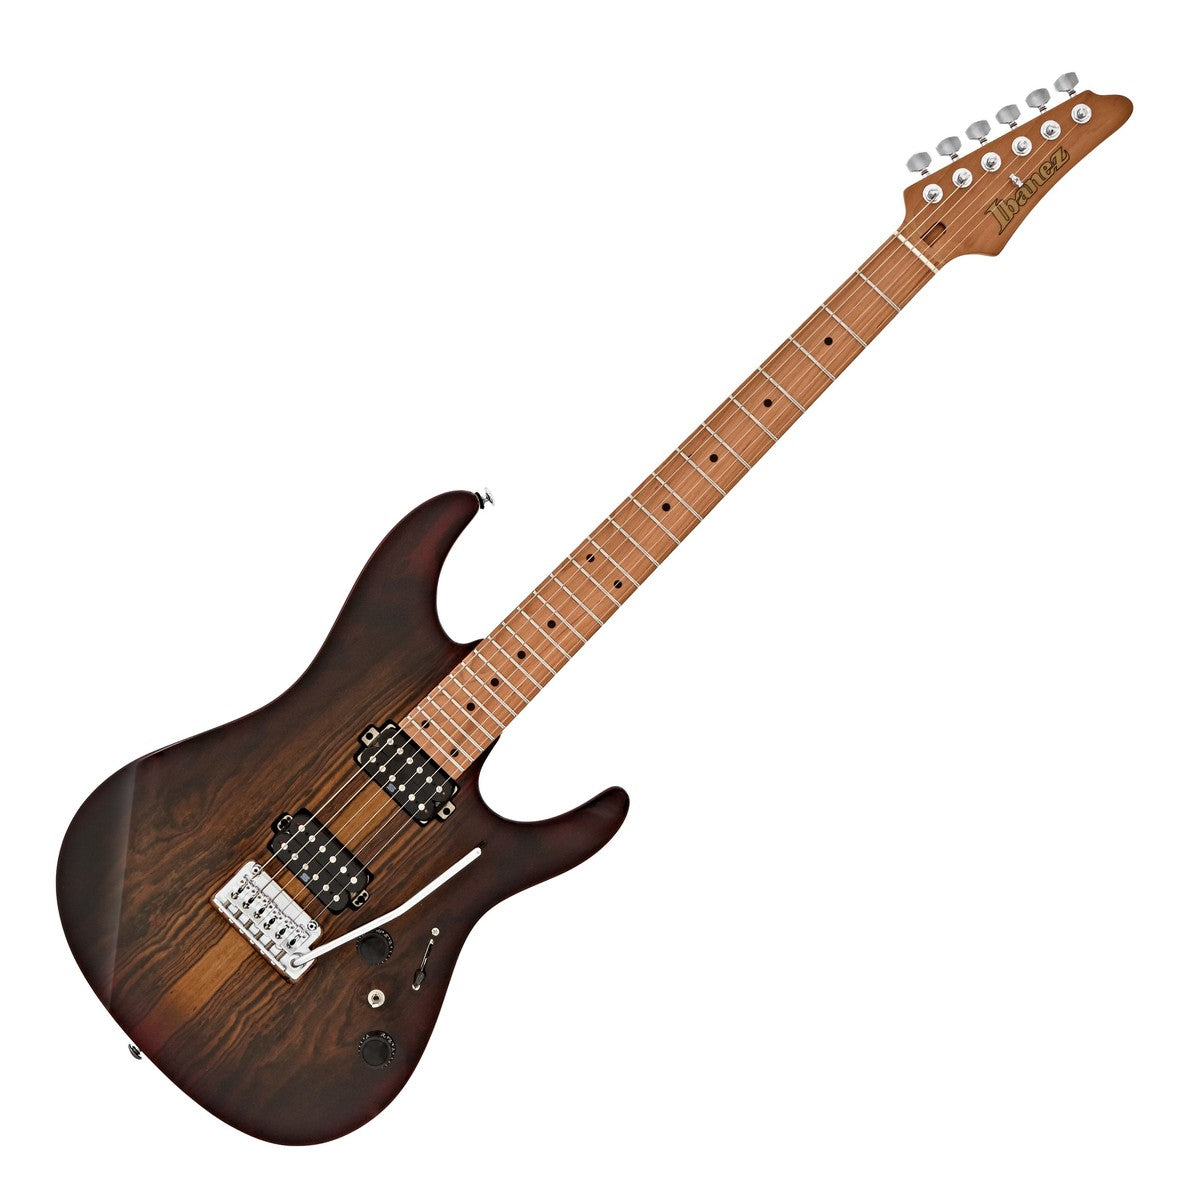 Ibanez Premium AZ Series Electric Guitar, Deep Espresso Burst